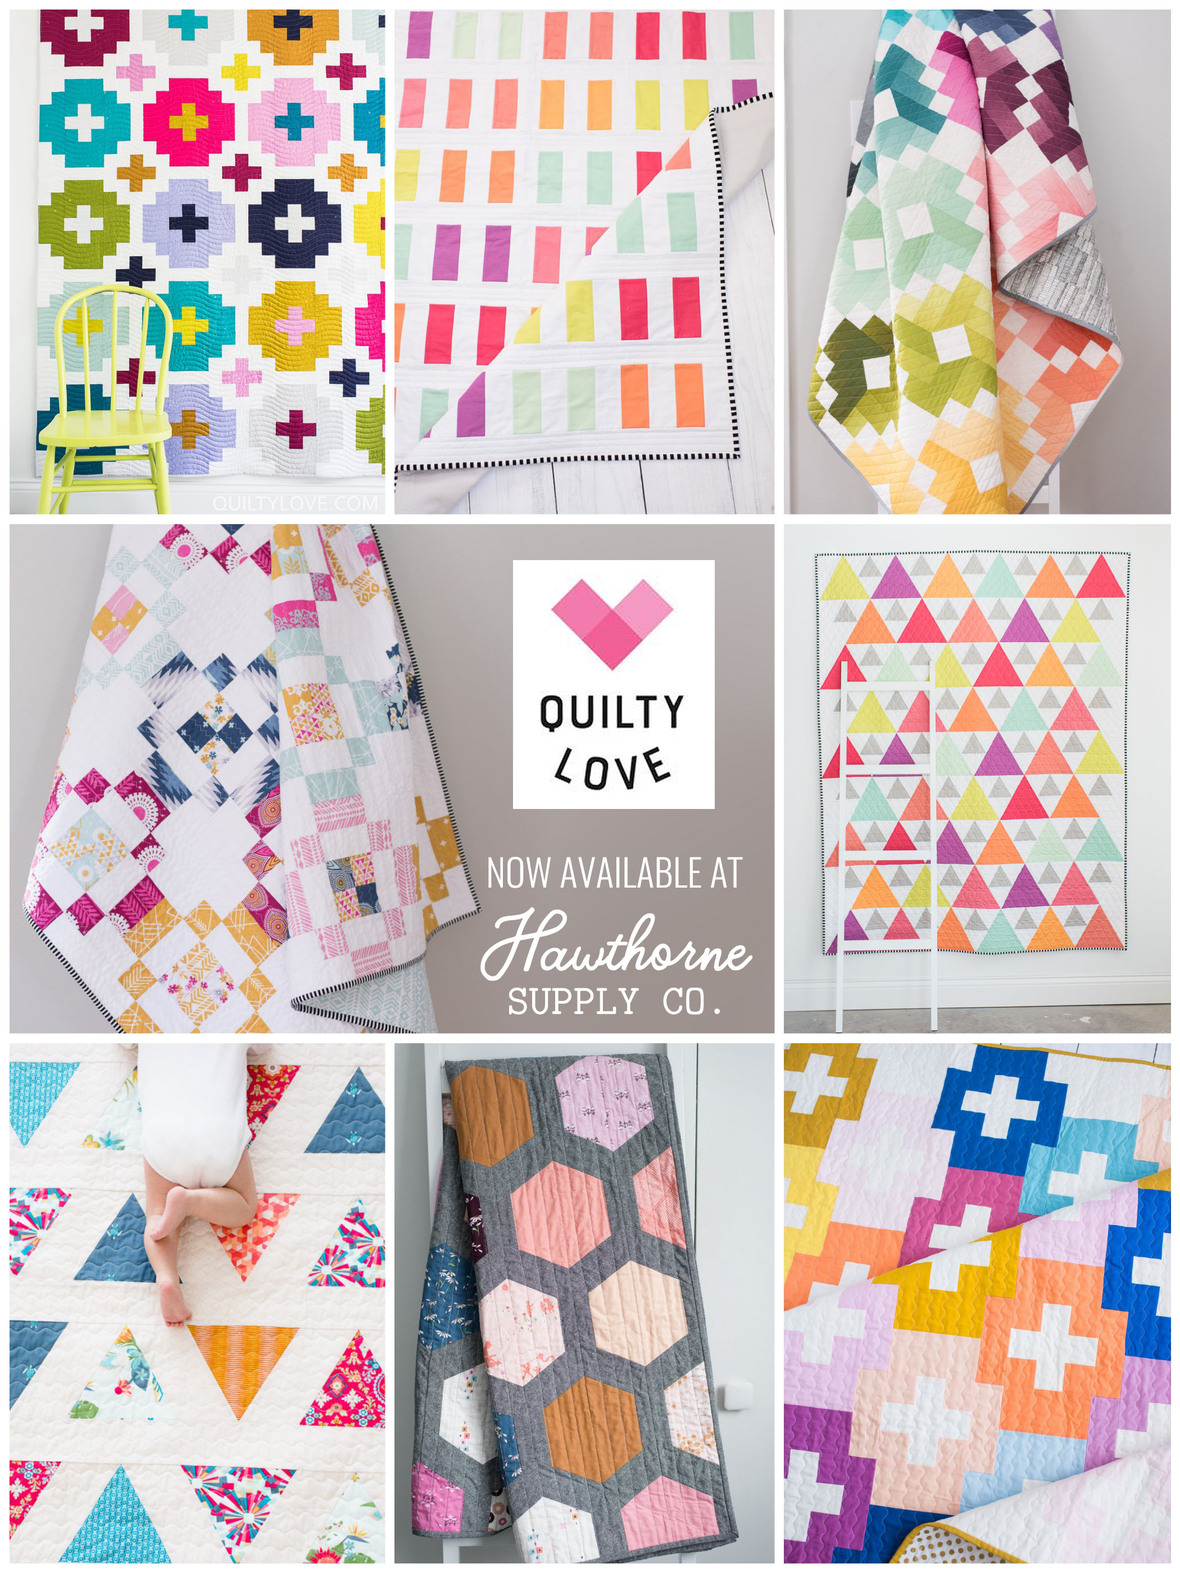 Quilty Love Patterns at Hawthorne Supply Co